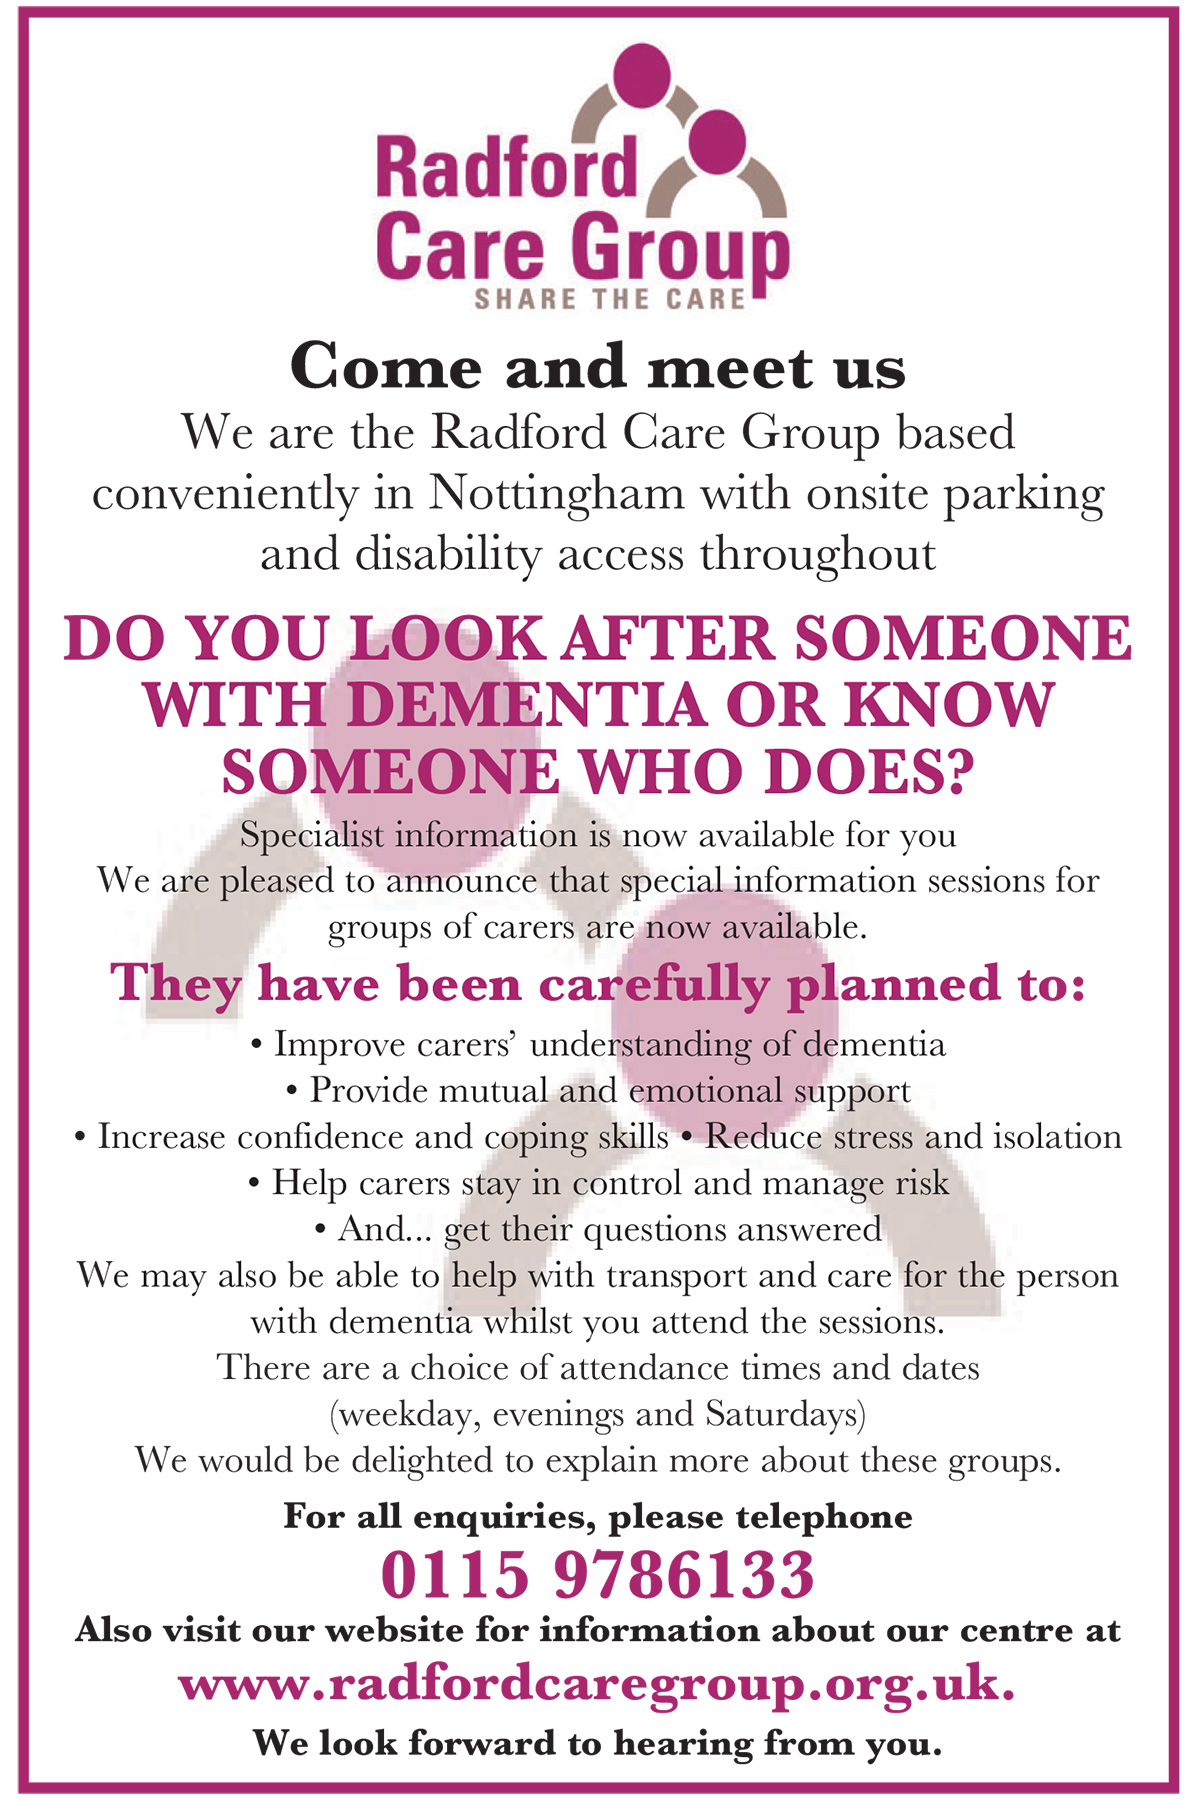 Radford Care Group Dementia care and support Nottingham